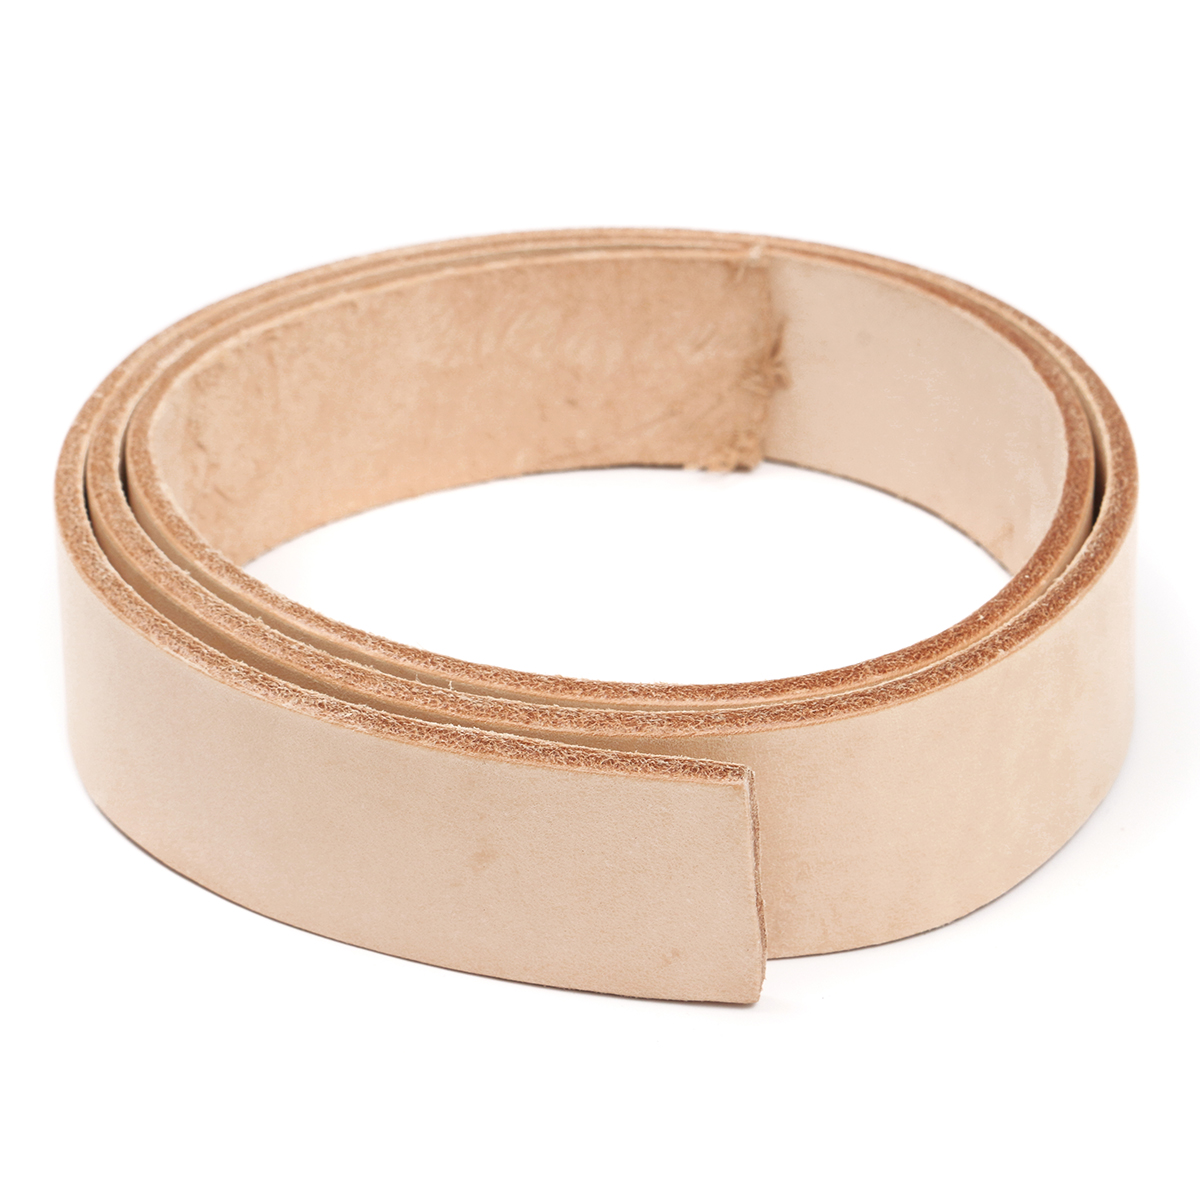 110cm Leather Belt Strap Natural Vegetable Tanned Cow H